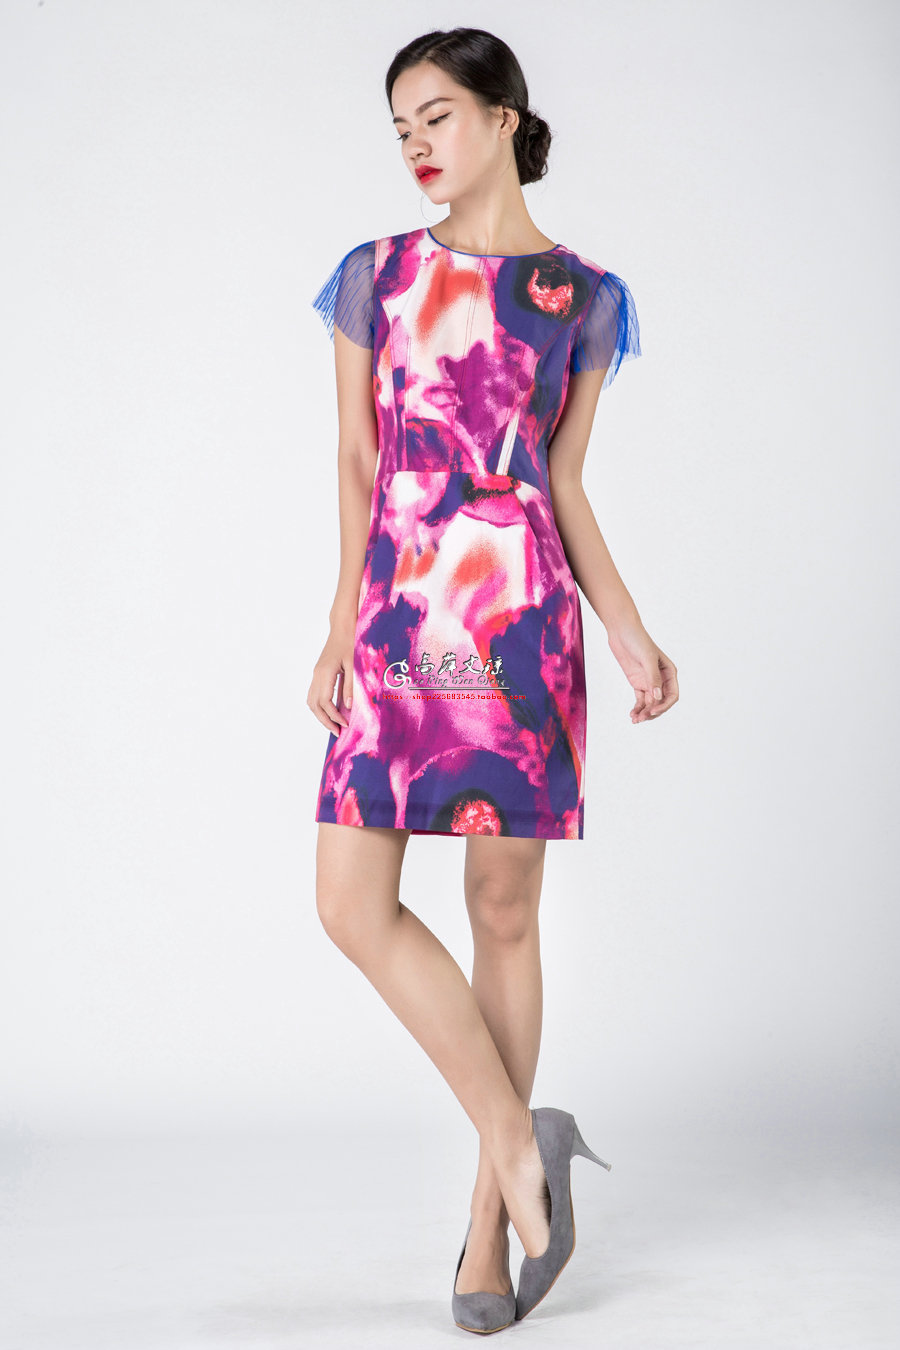 Gaoping  Wenqiong G1605 women silk pattern printed round neck short sleeve dress